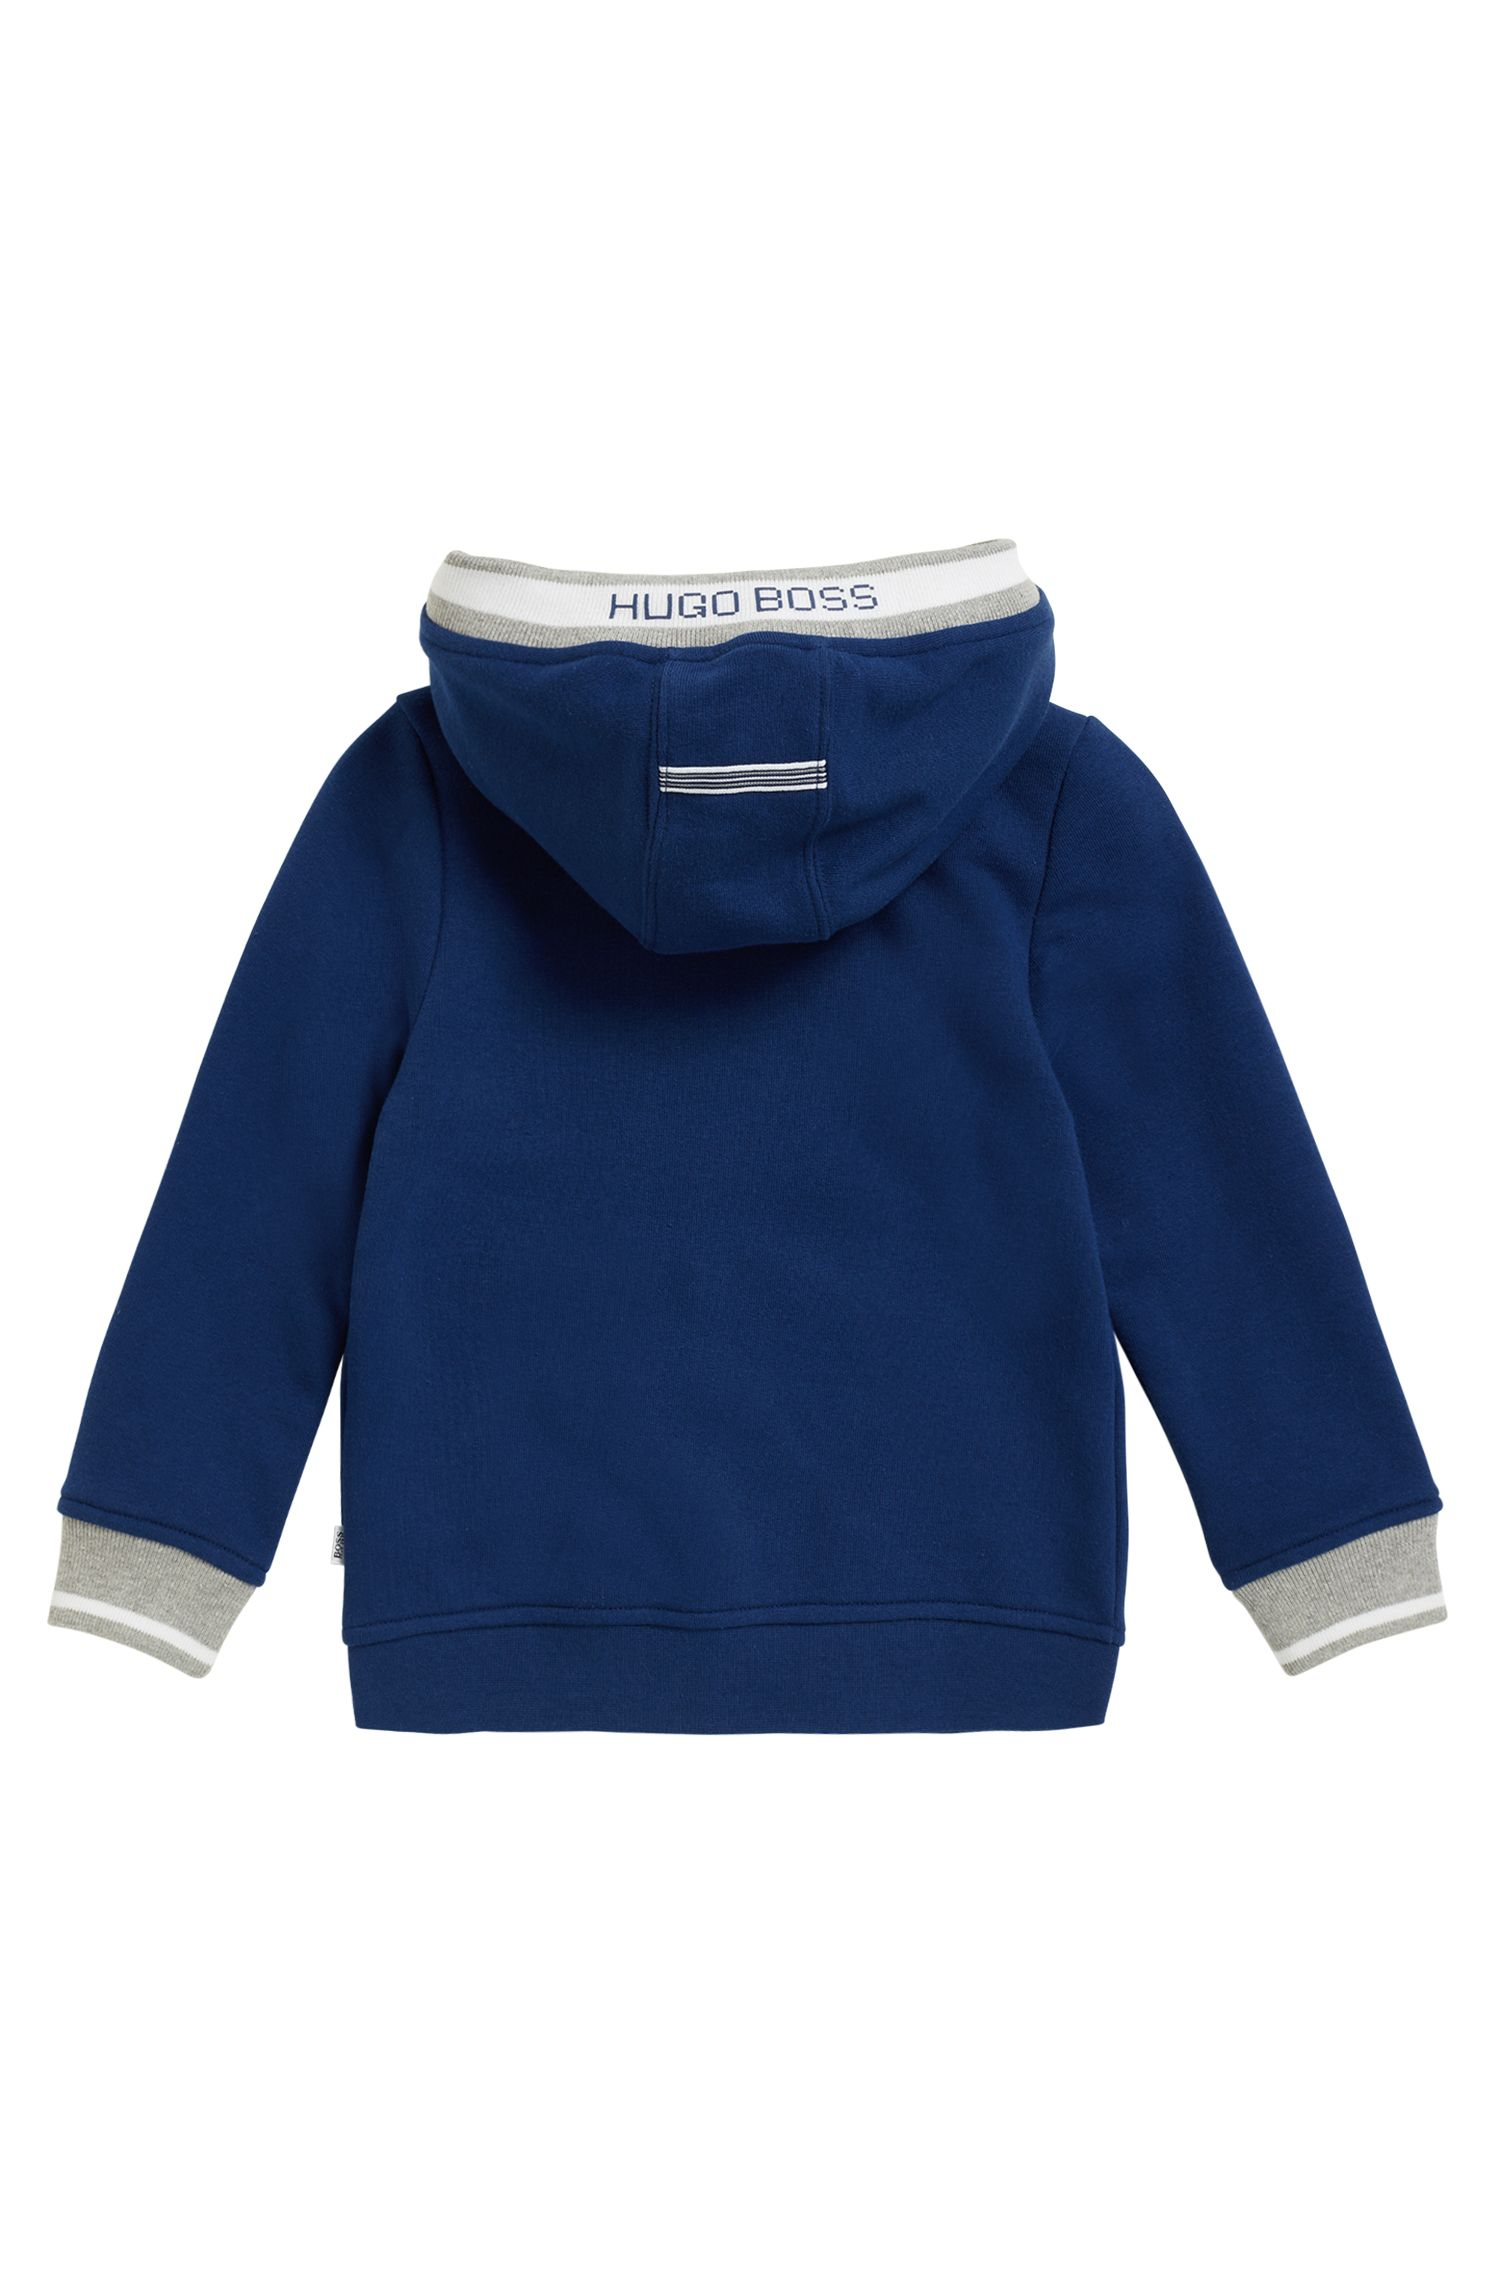 Kids' zip-through hooded jacket in French terry